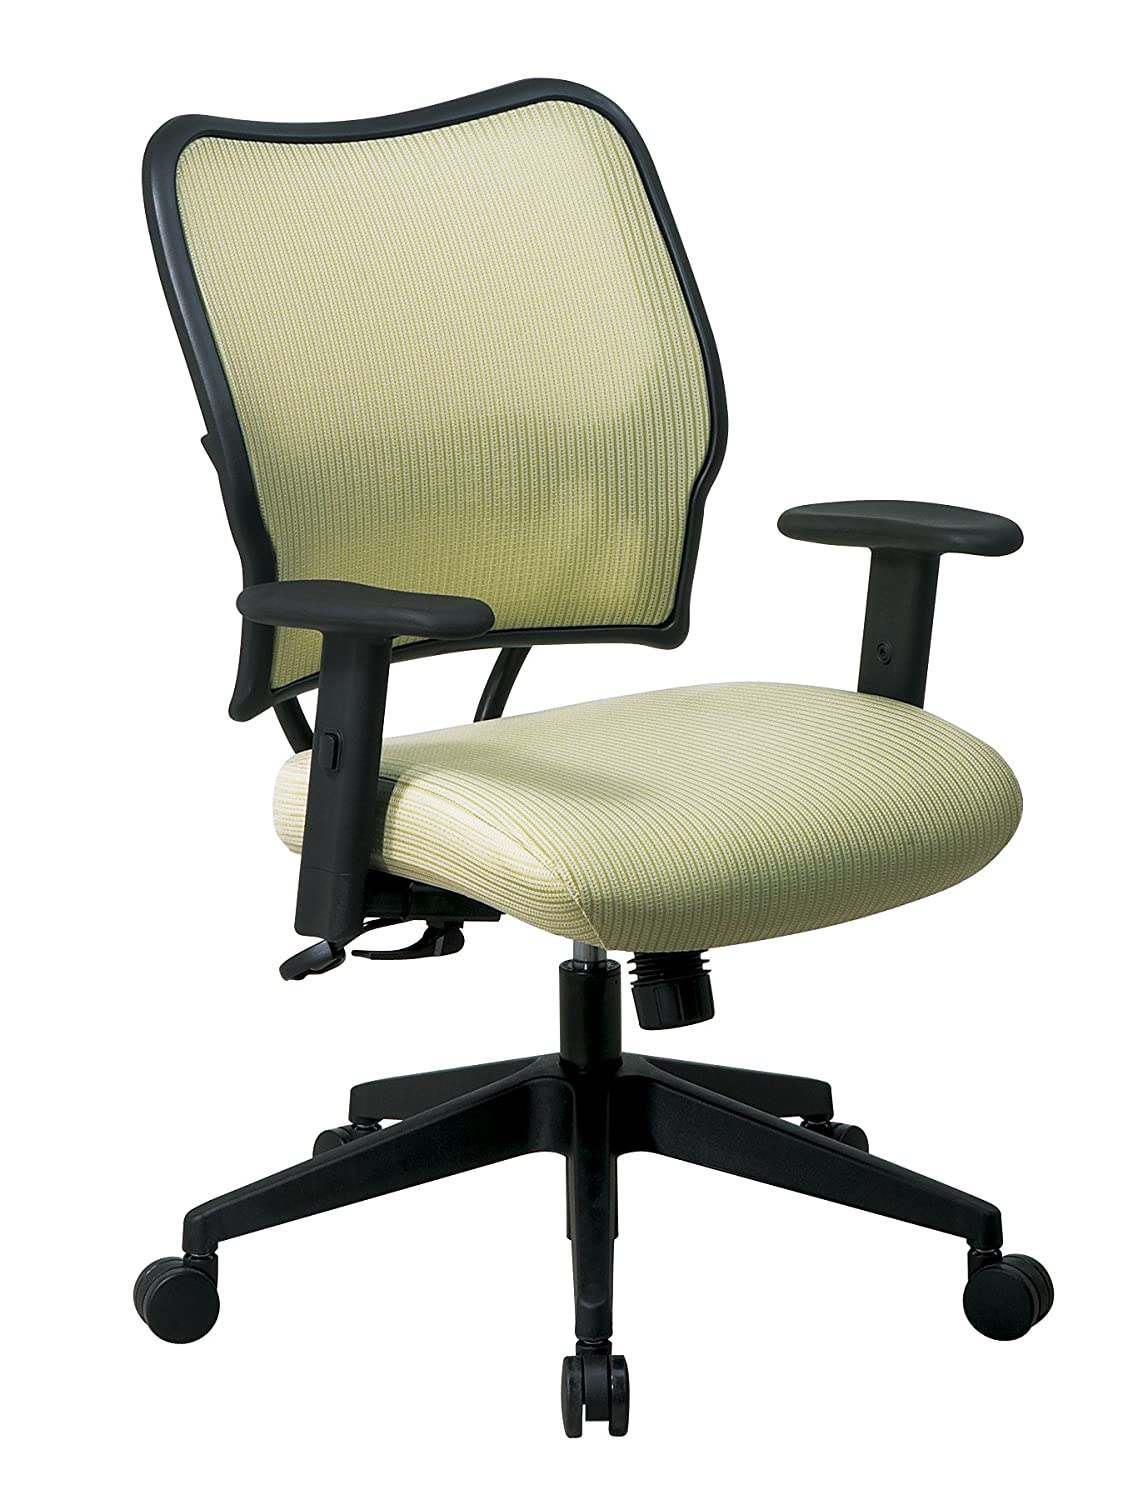 2-to-1 Synchro Tilt Control and 2-Way Adjustable Arms Managers Chair SPACE Seating Deluxe VeraFlex Fabric Seat and Back Blue Mist OFM 13-V77N1WA